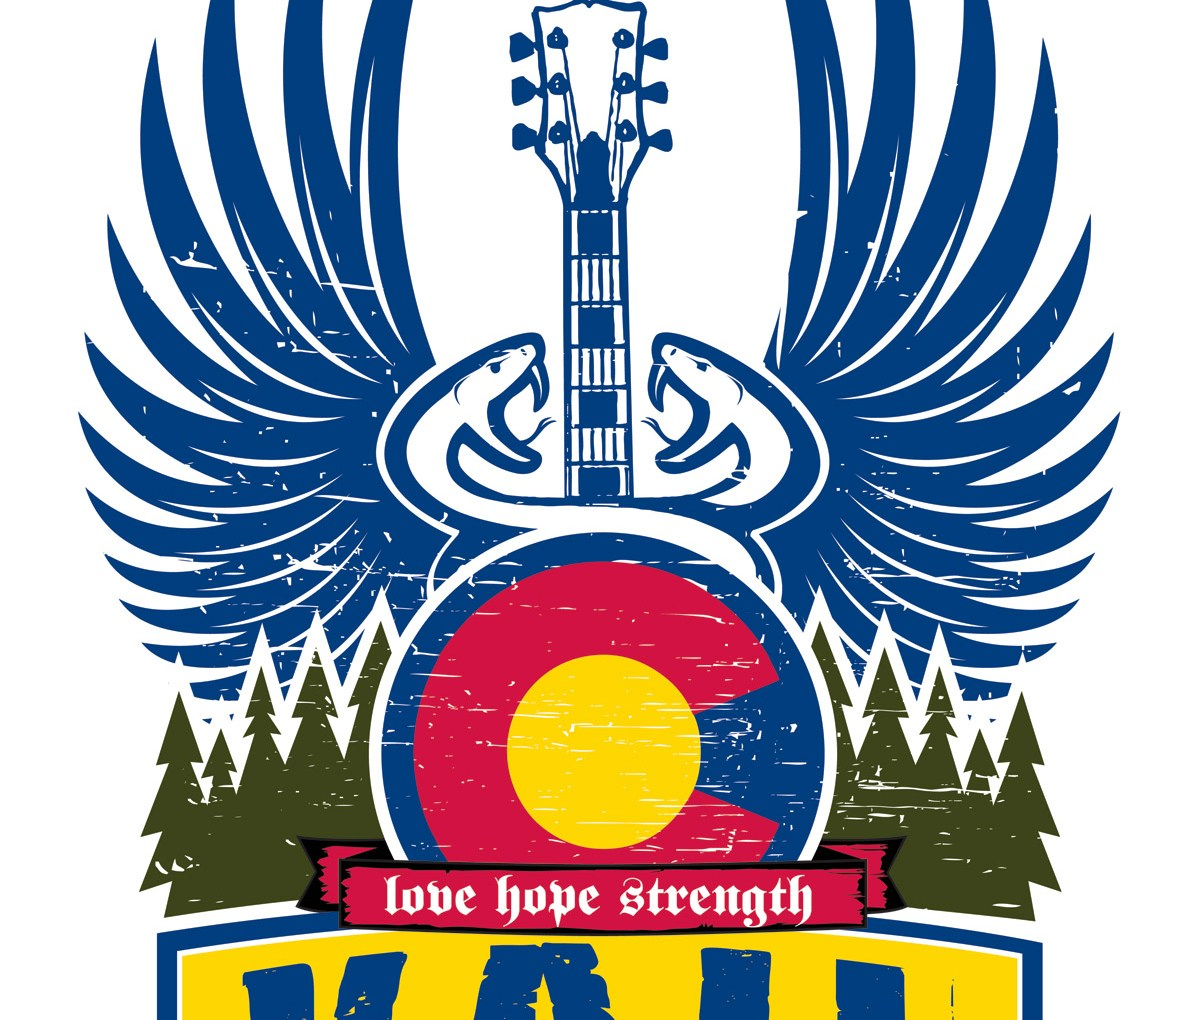 Love Hope Strength excited about Vail Rocks hike/concert event